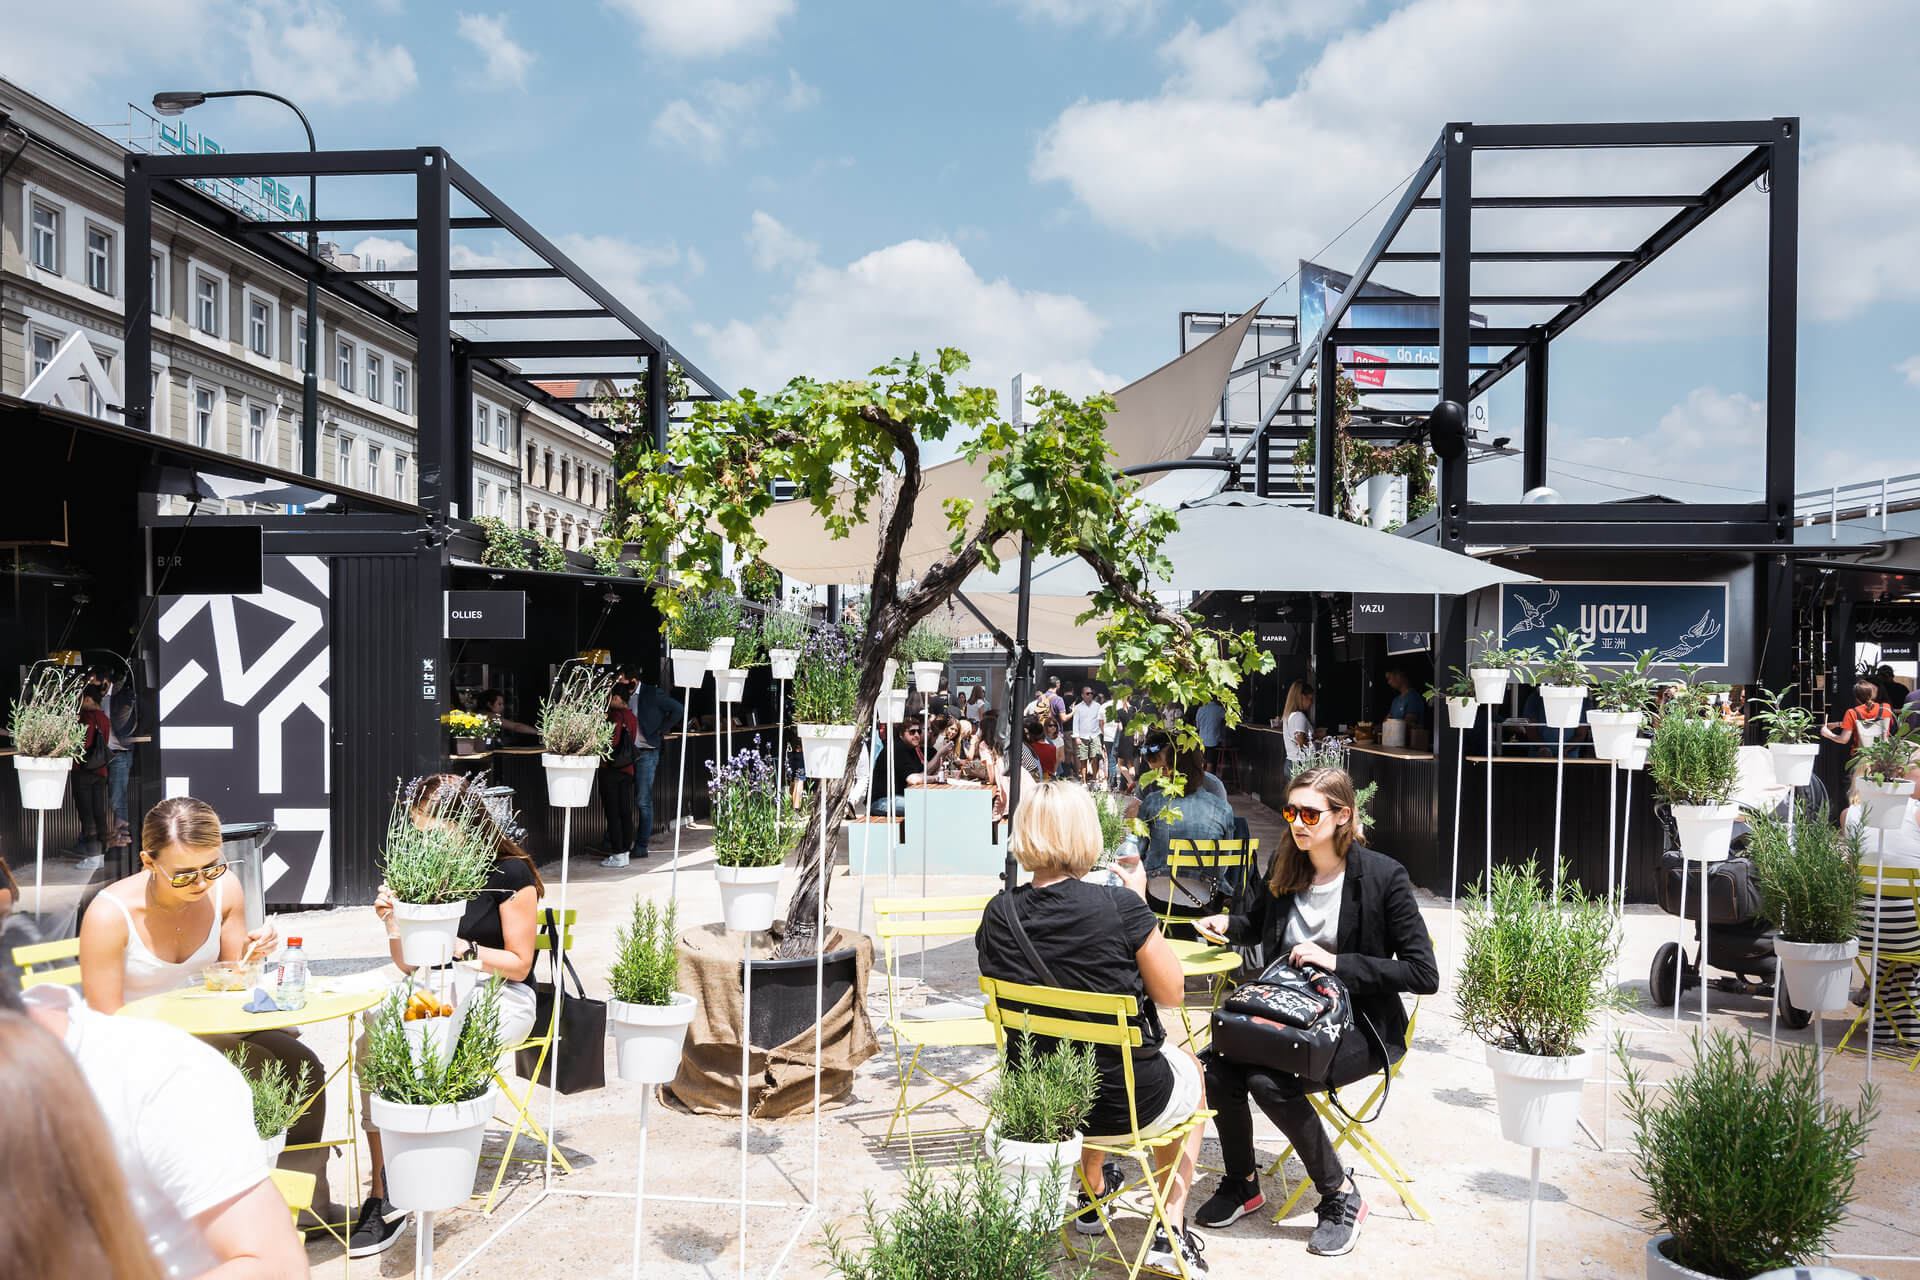 A container village for art, education, food & entertainment located in the heart of Prague.